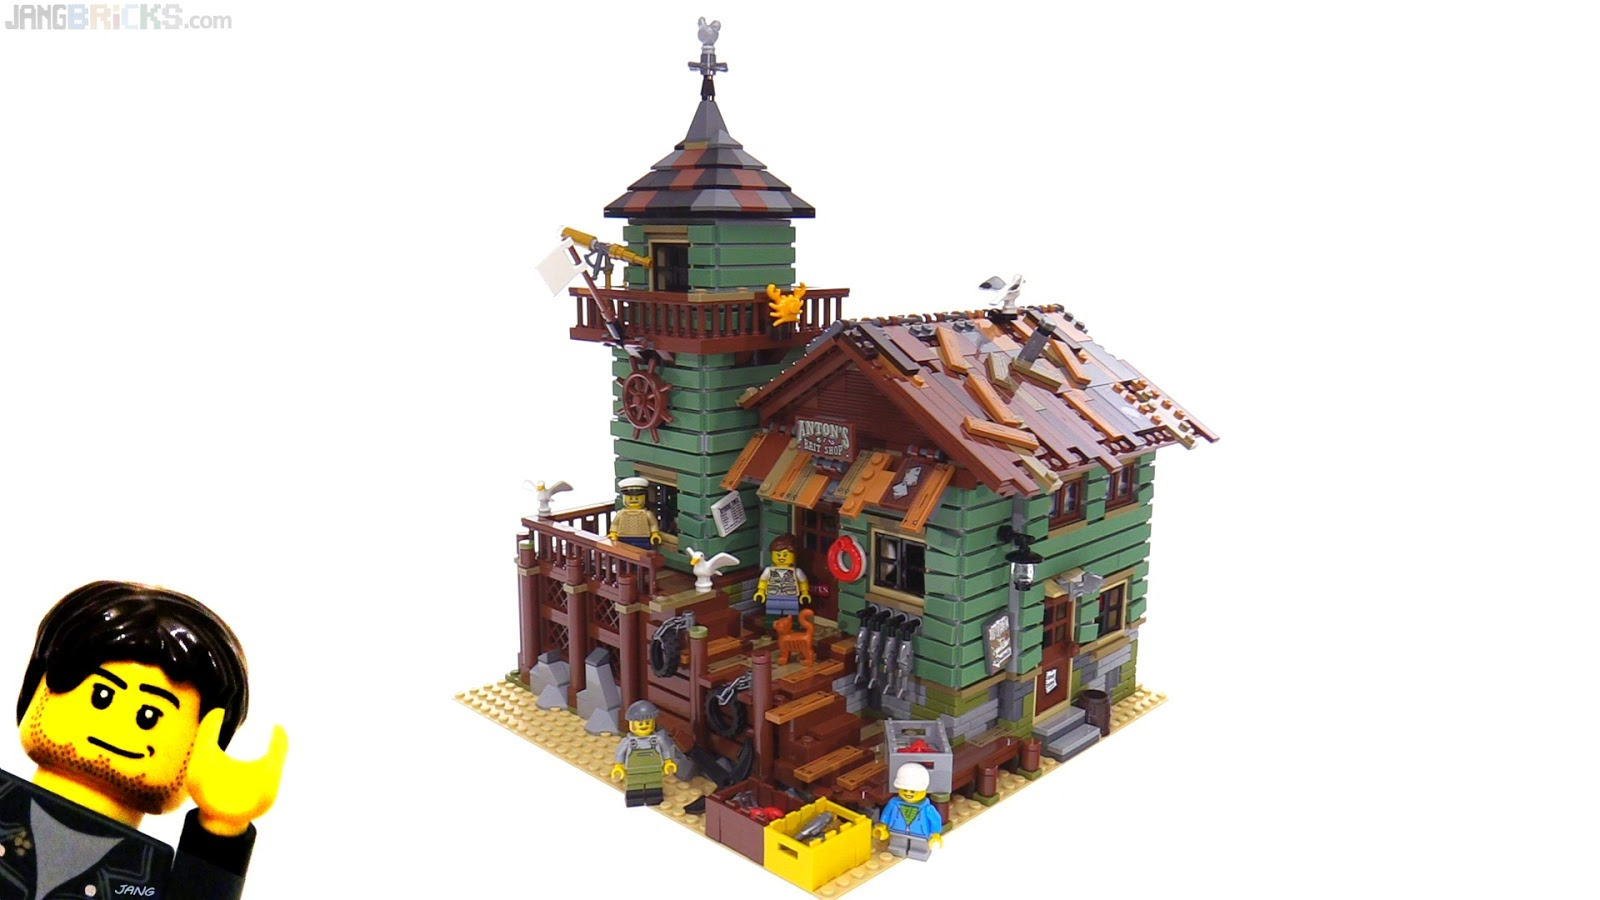 Lego ideas old fishing store review 21310 for Lego old fishing store